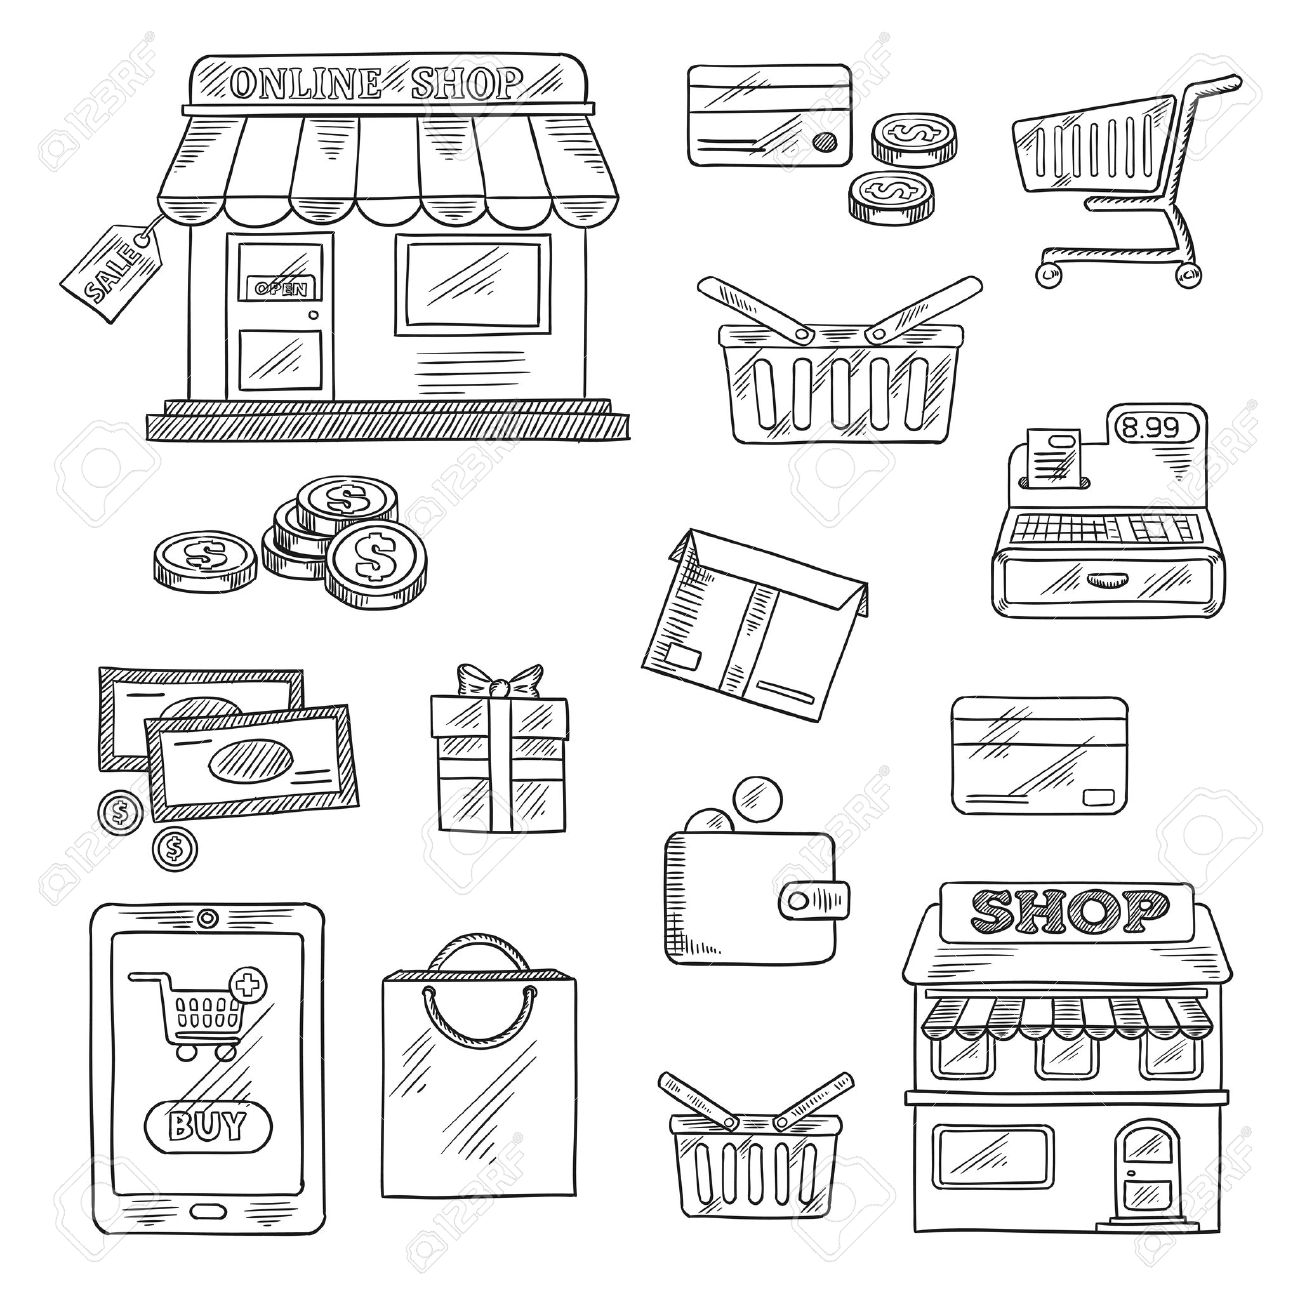 Shopping and retail icons in sketch style of online shop sale tag tablet pc and buy button money credit card shopping cart basket and bag store